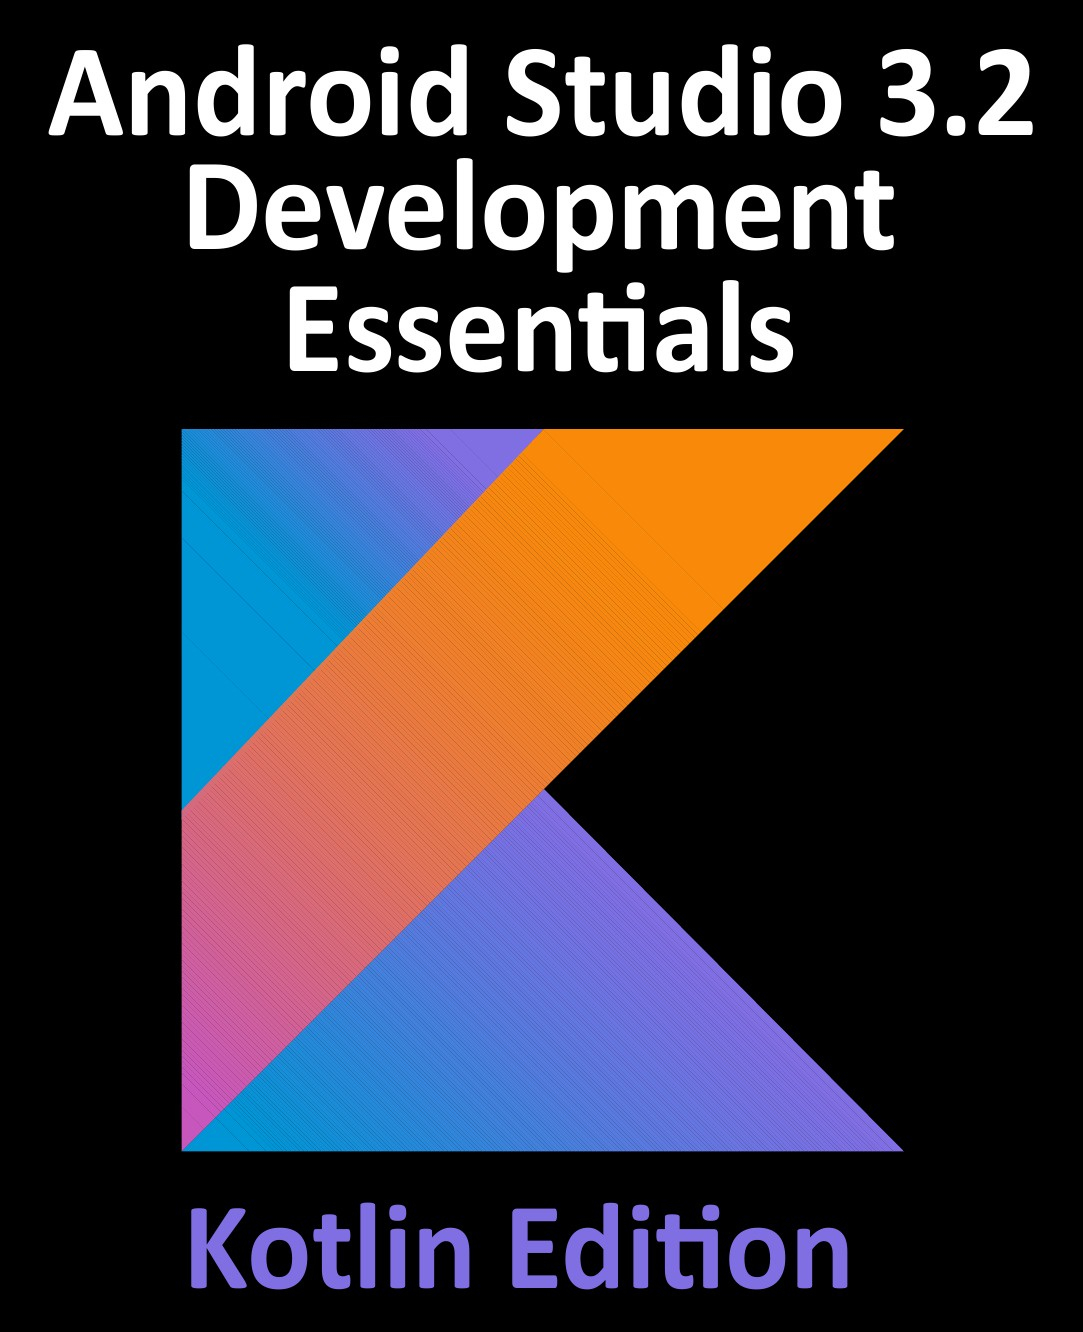 Neil Smyth Android Studio 3.2 Development Essentials - Kotlin Edition. Developing Android 9 Apps Using Android Studio 3.2, Kotlin and Android Jetpack android